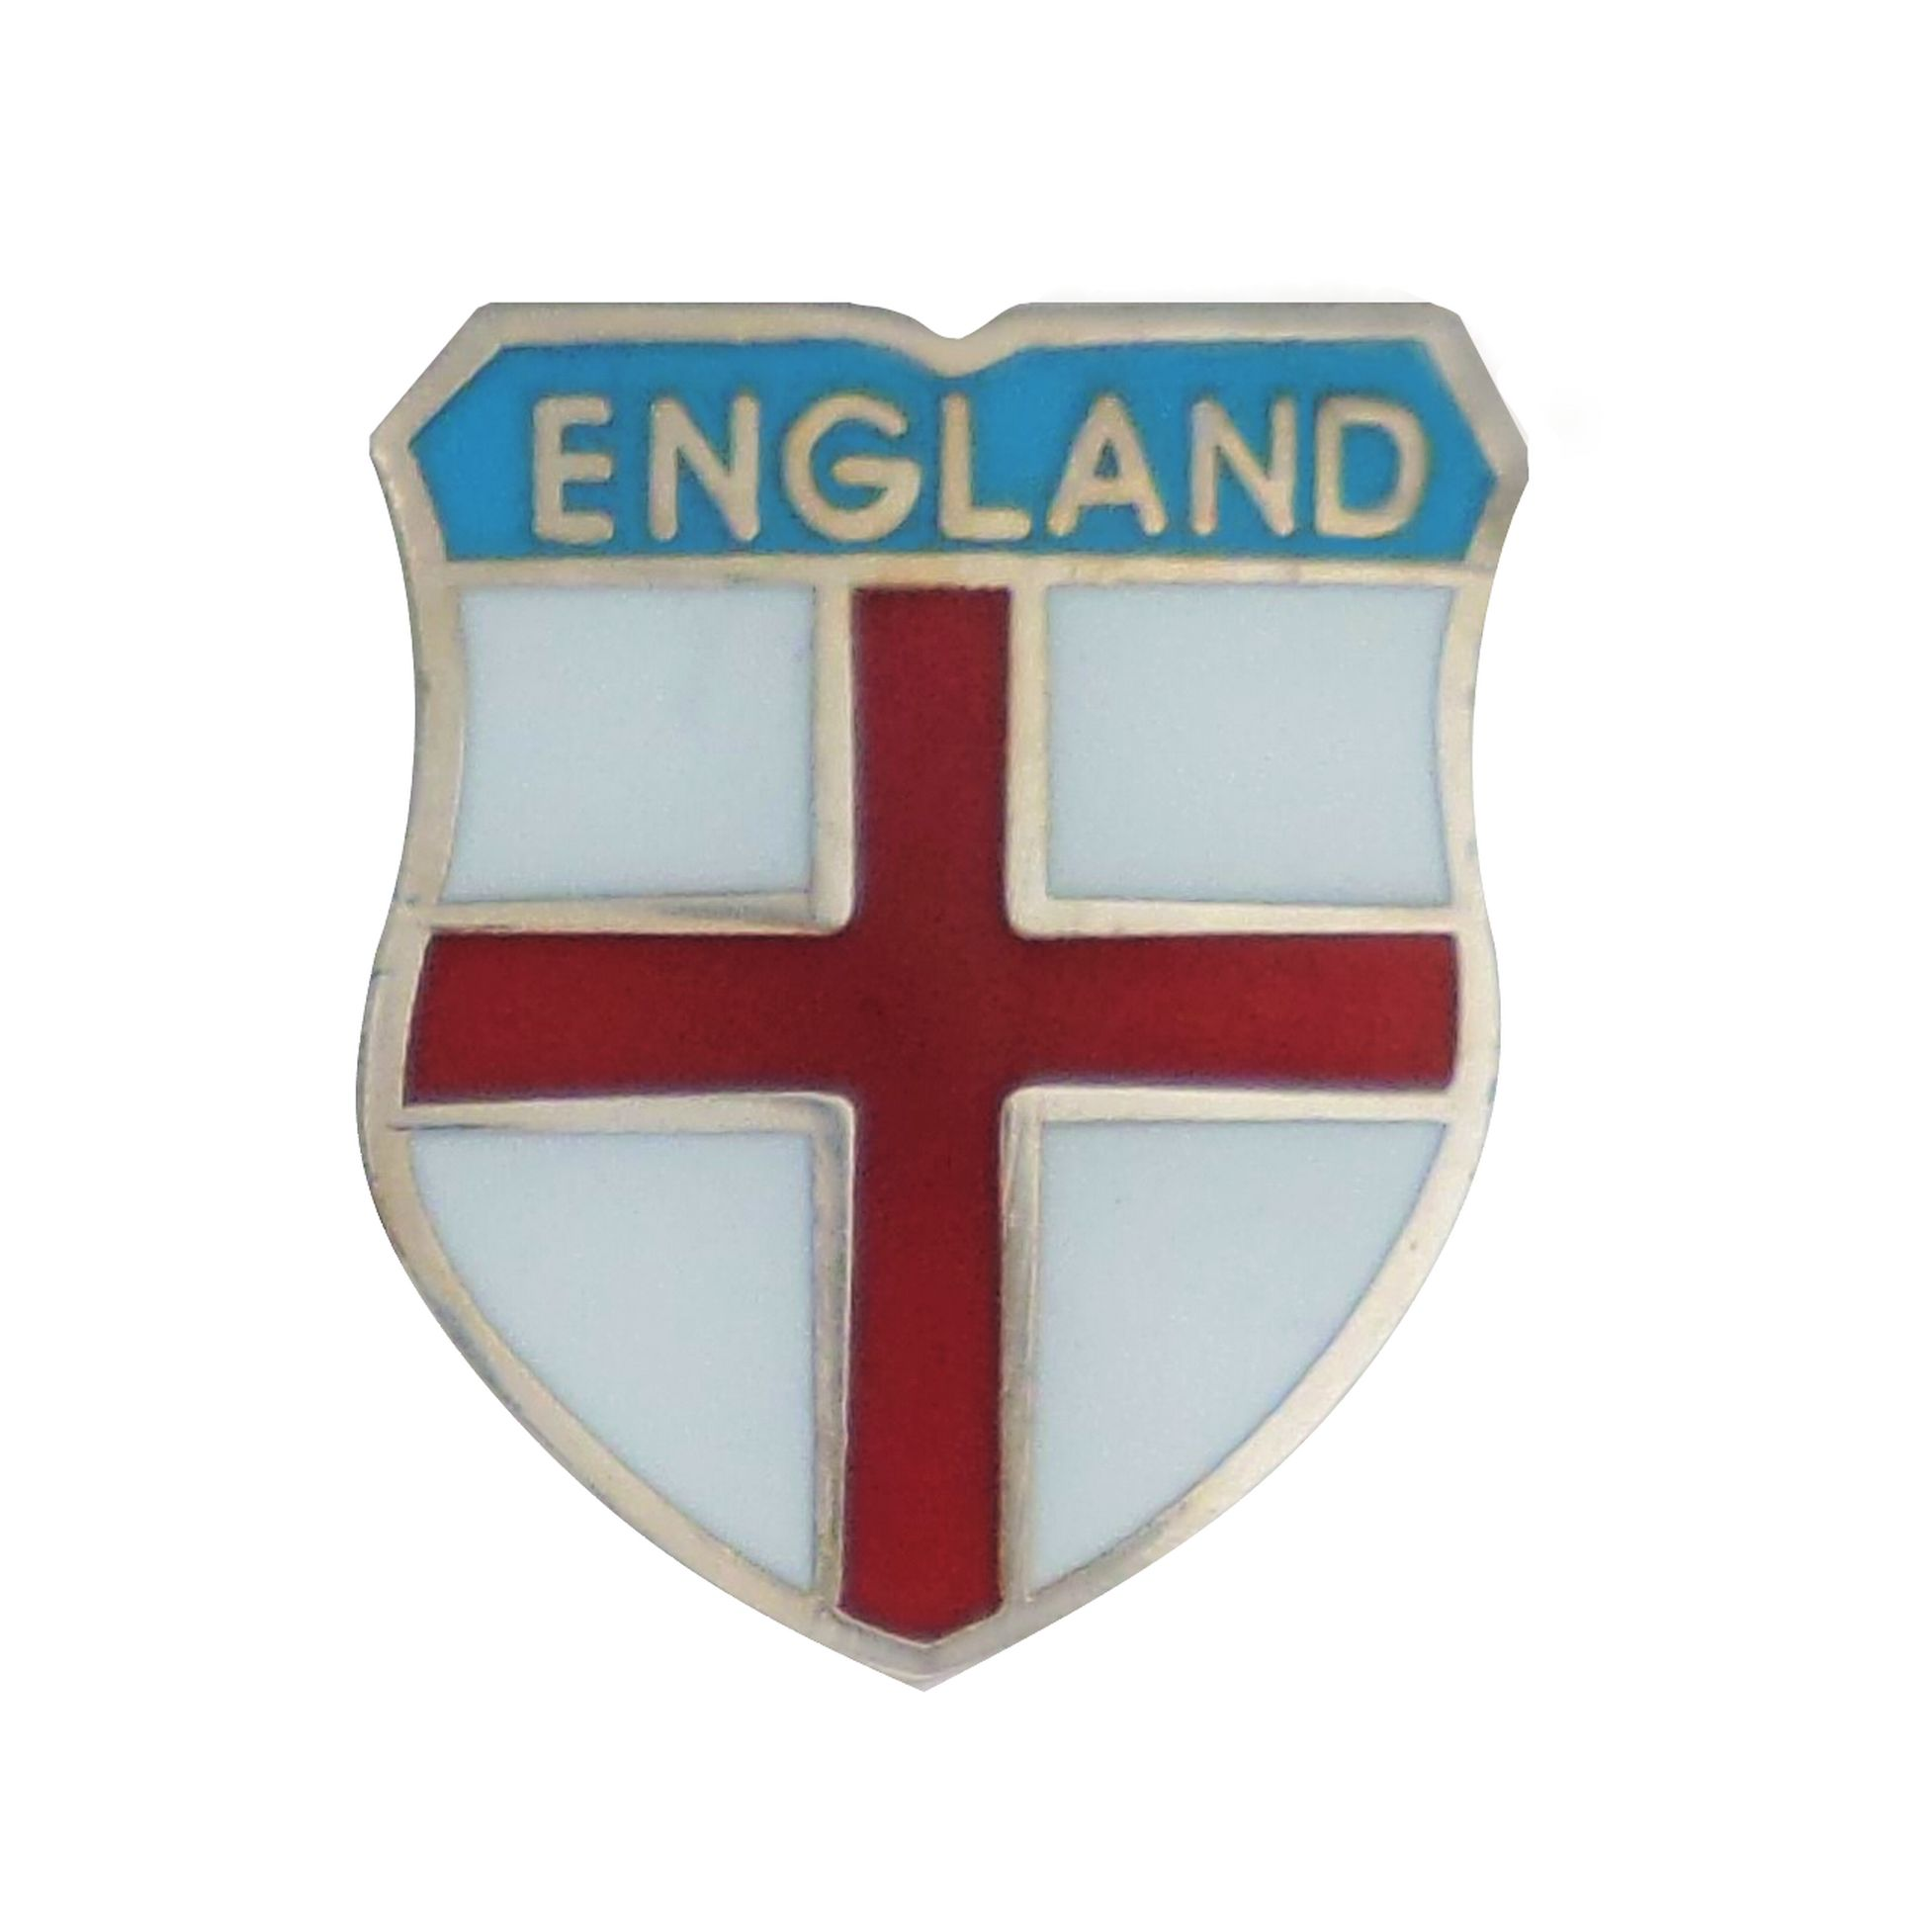 England St George Curved Shield Pin Badge